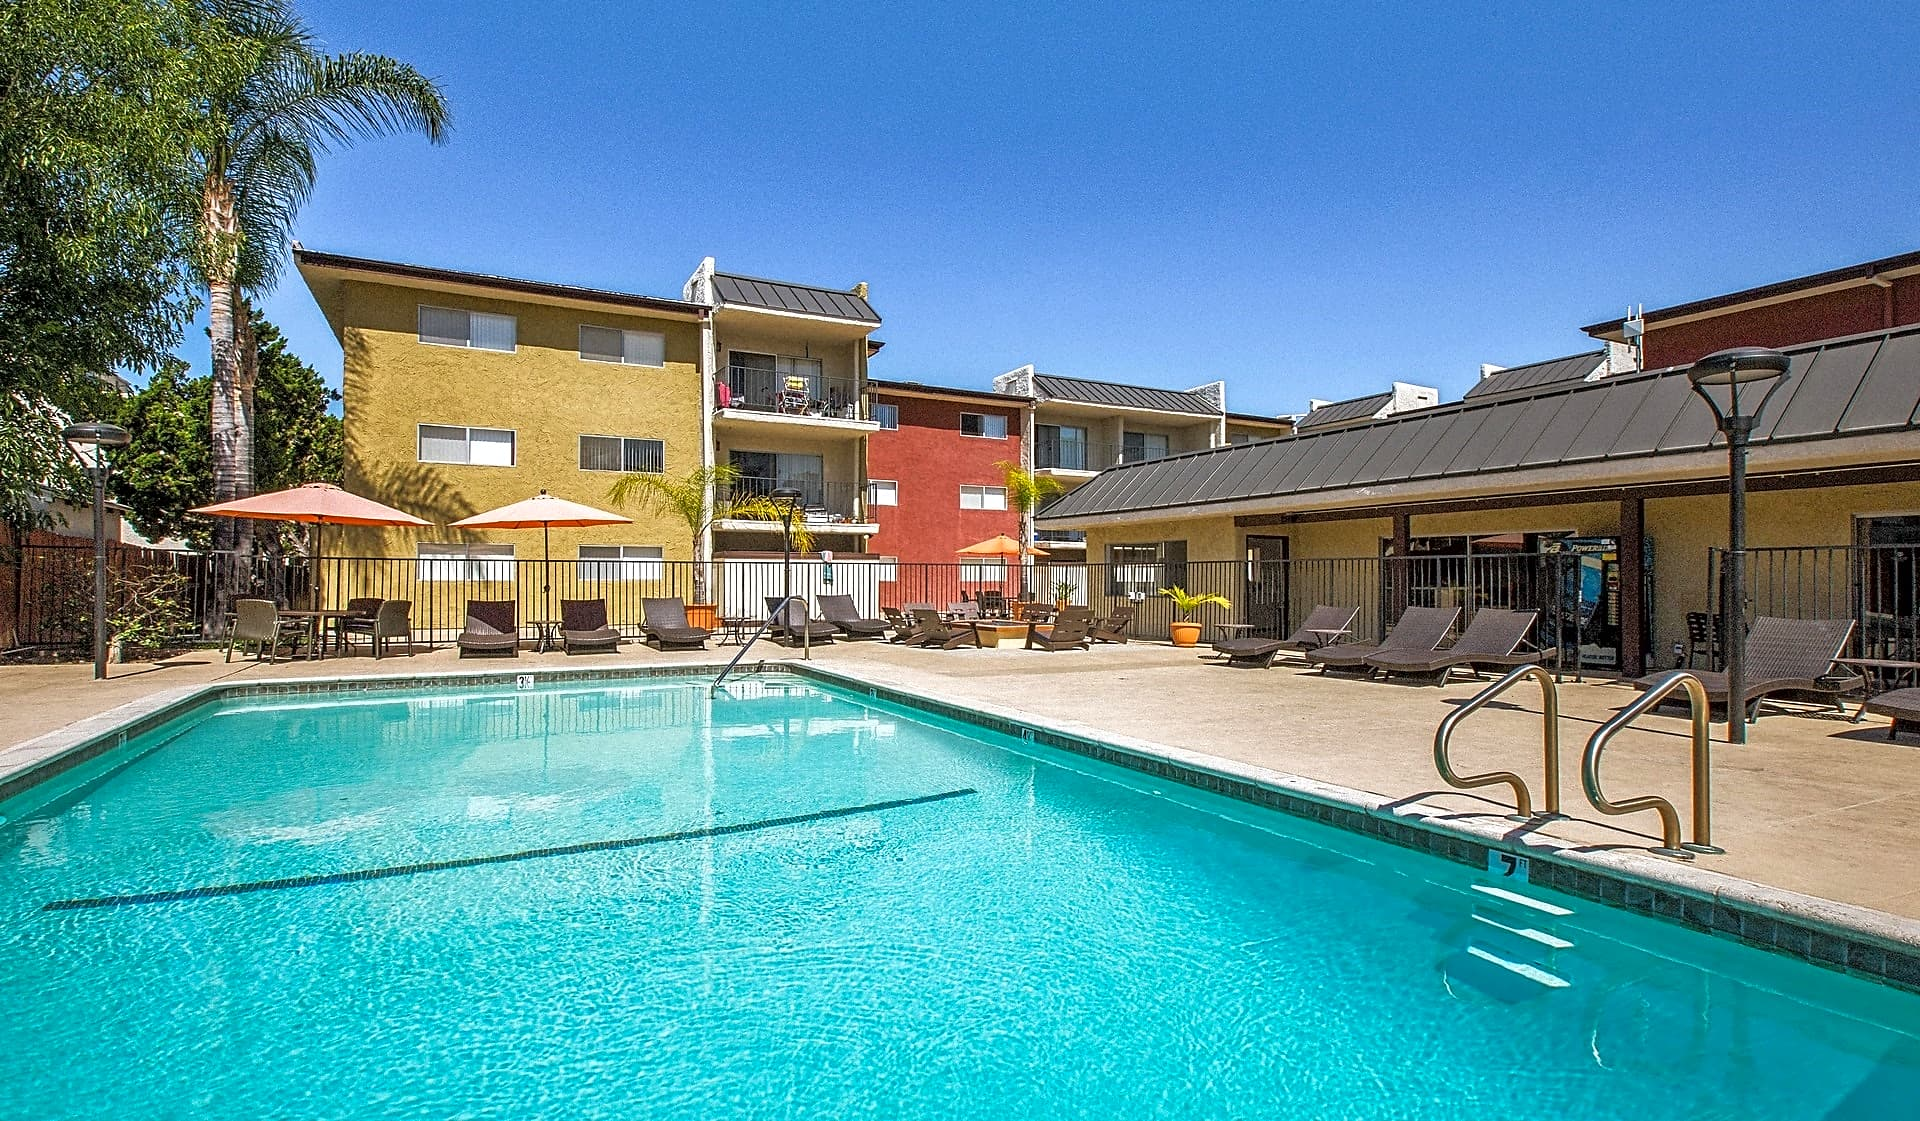 Villas Of Pasadena Apartment Homes Pasadena Ca 91101